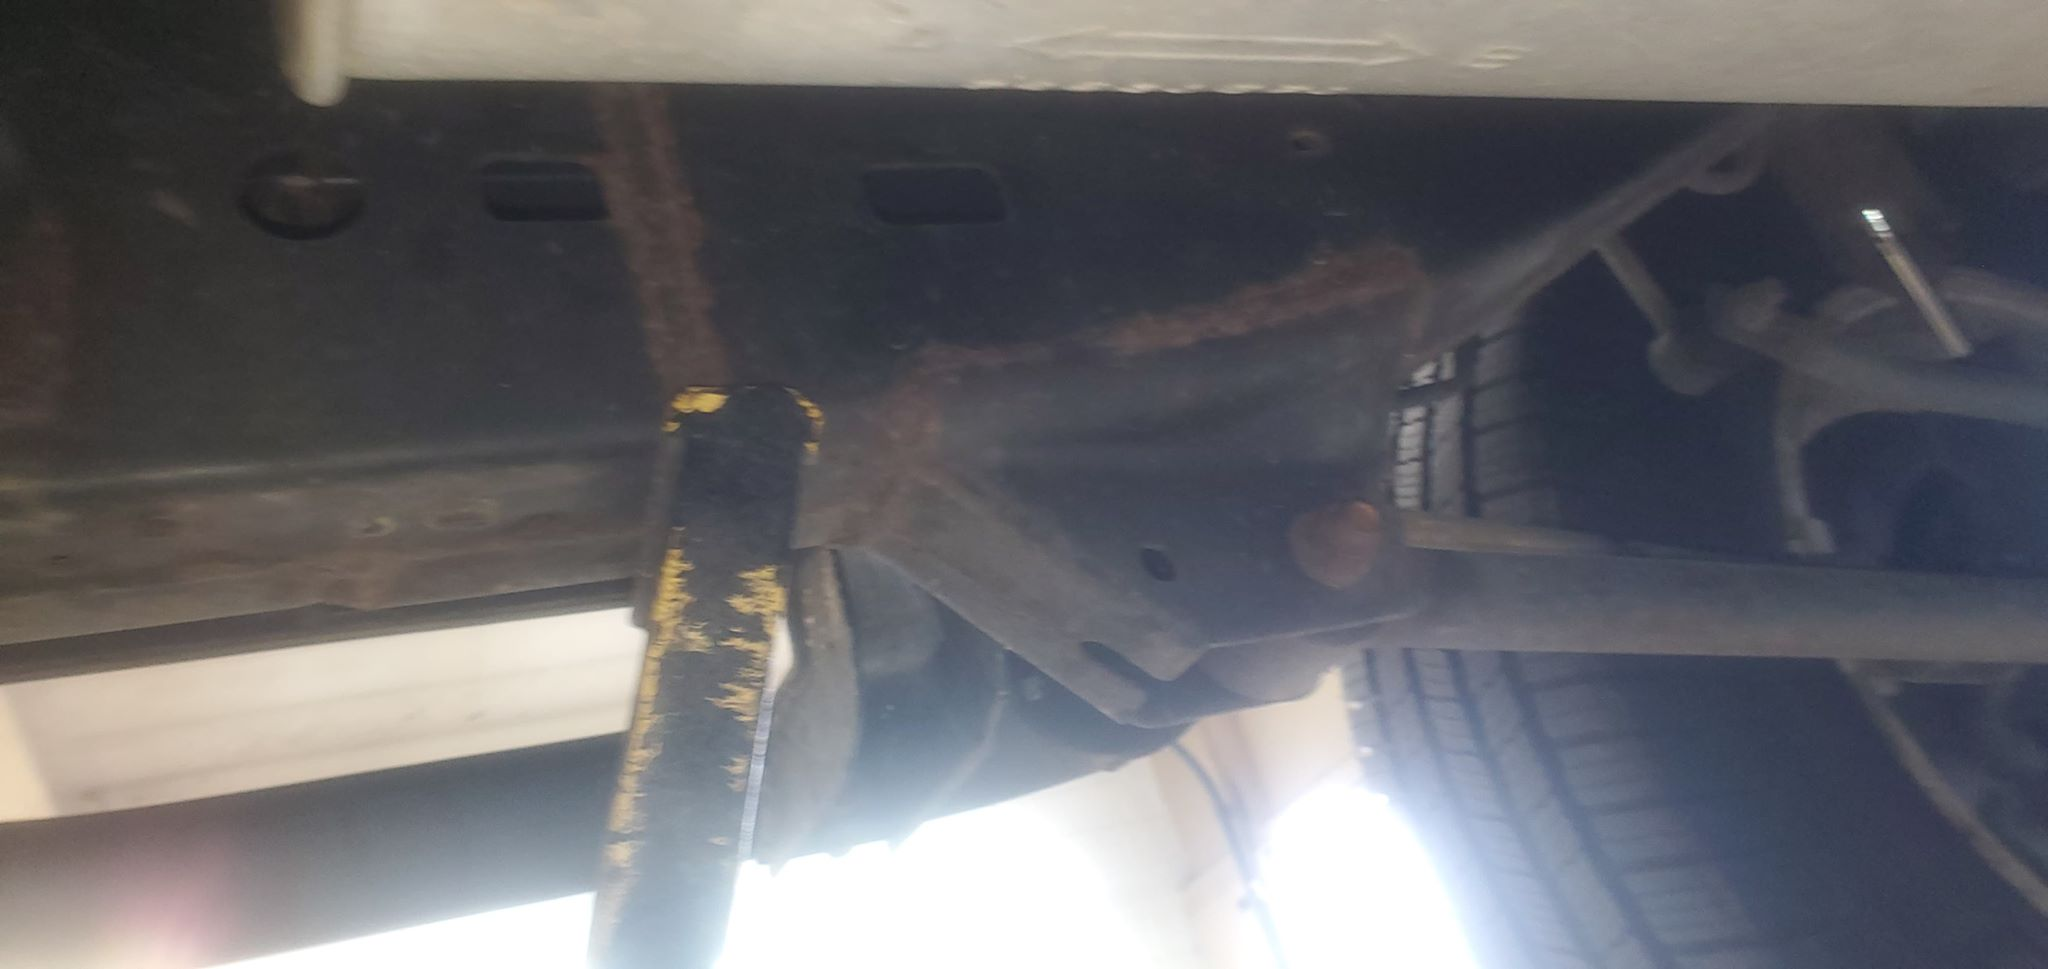 How much is too much rust on a 2006 4Runner?-82155205_474096970201070_1727861018148732928_n-jpg